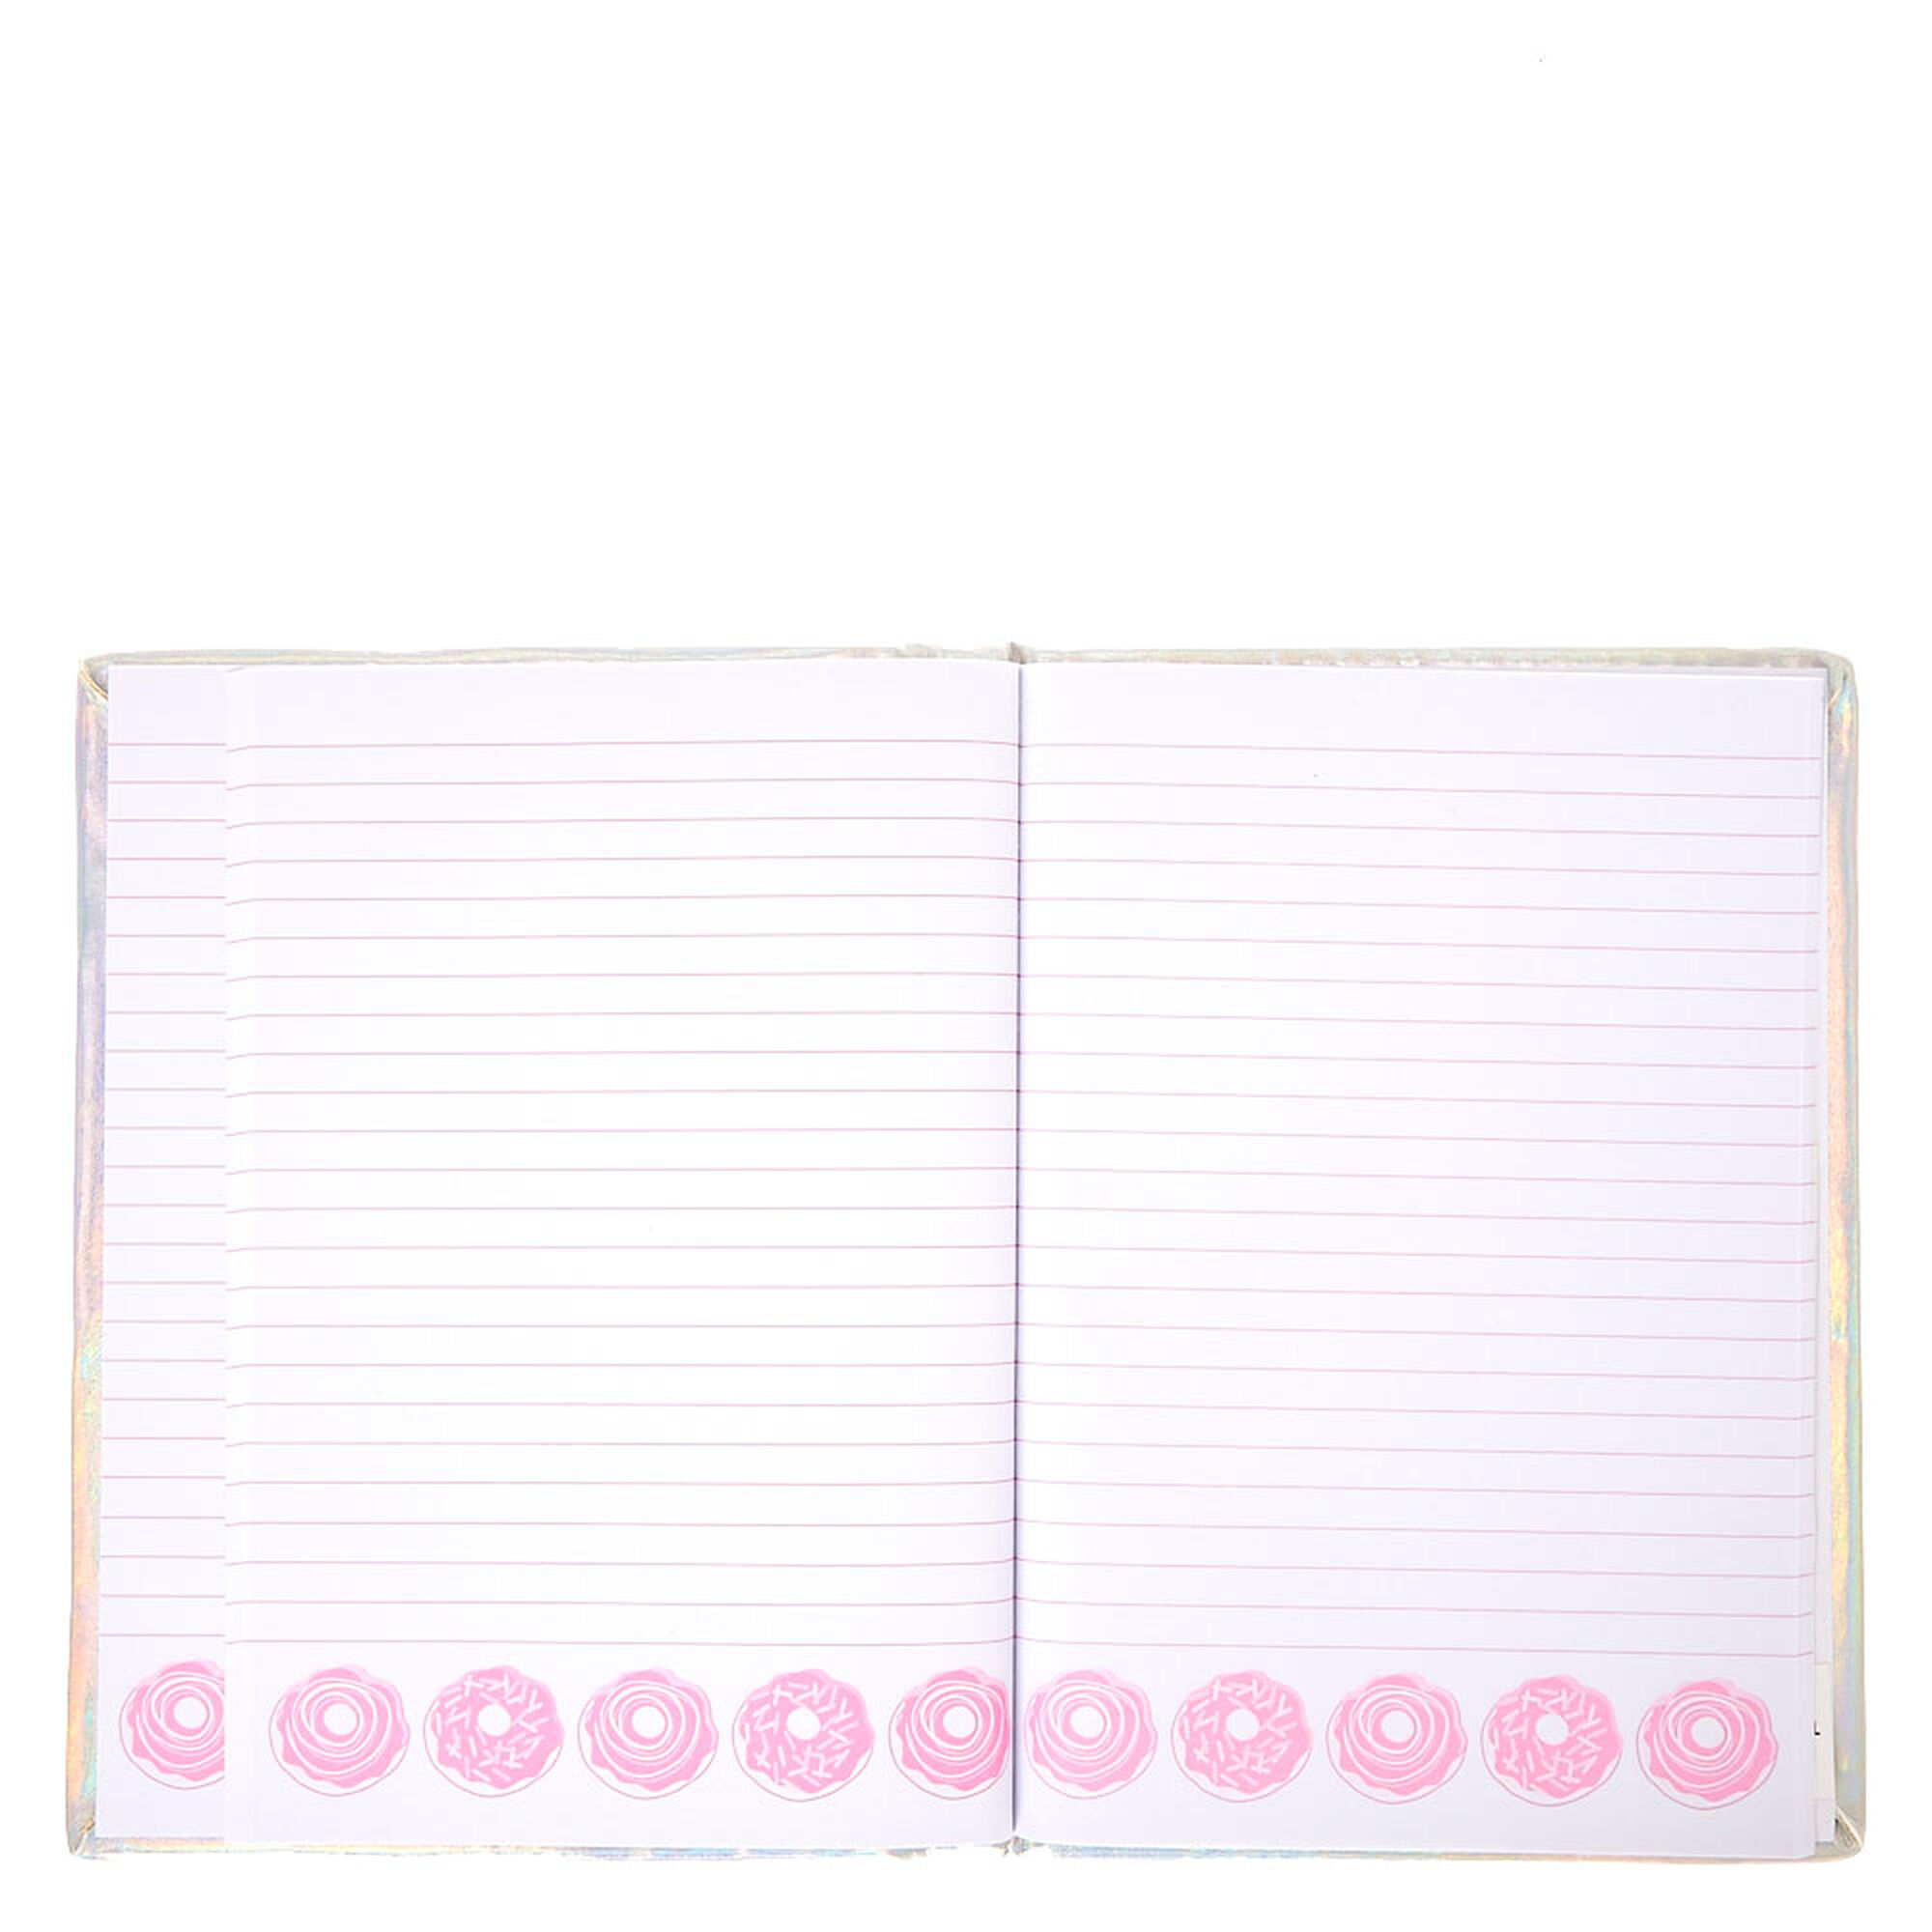 diaries initial notebook home e rings en gb notebooks